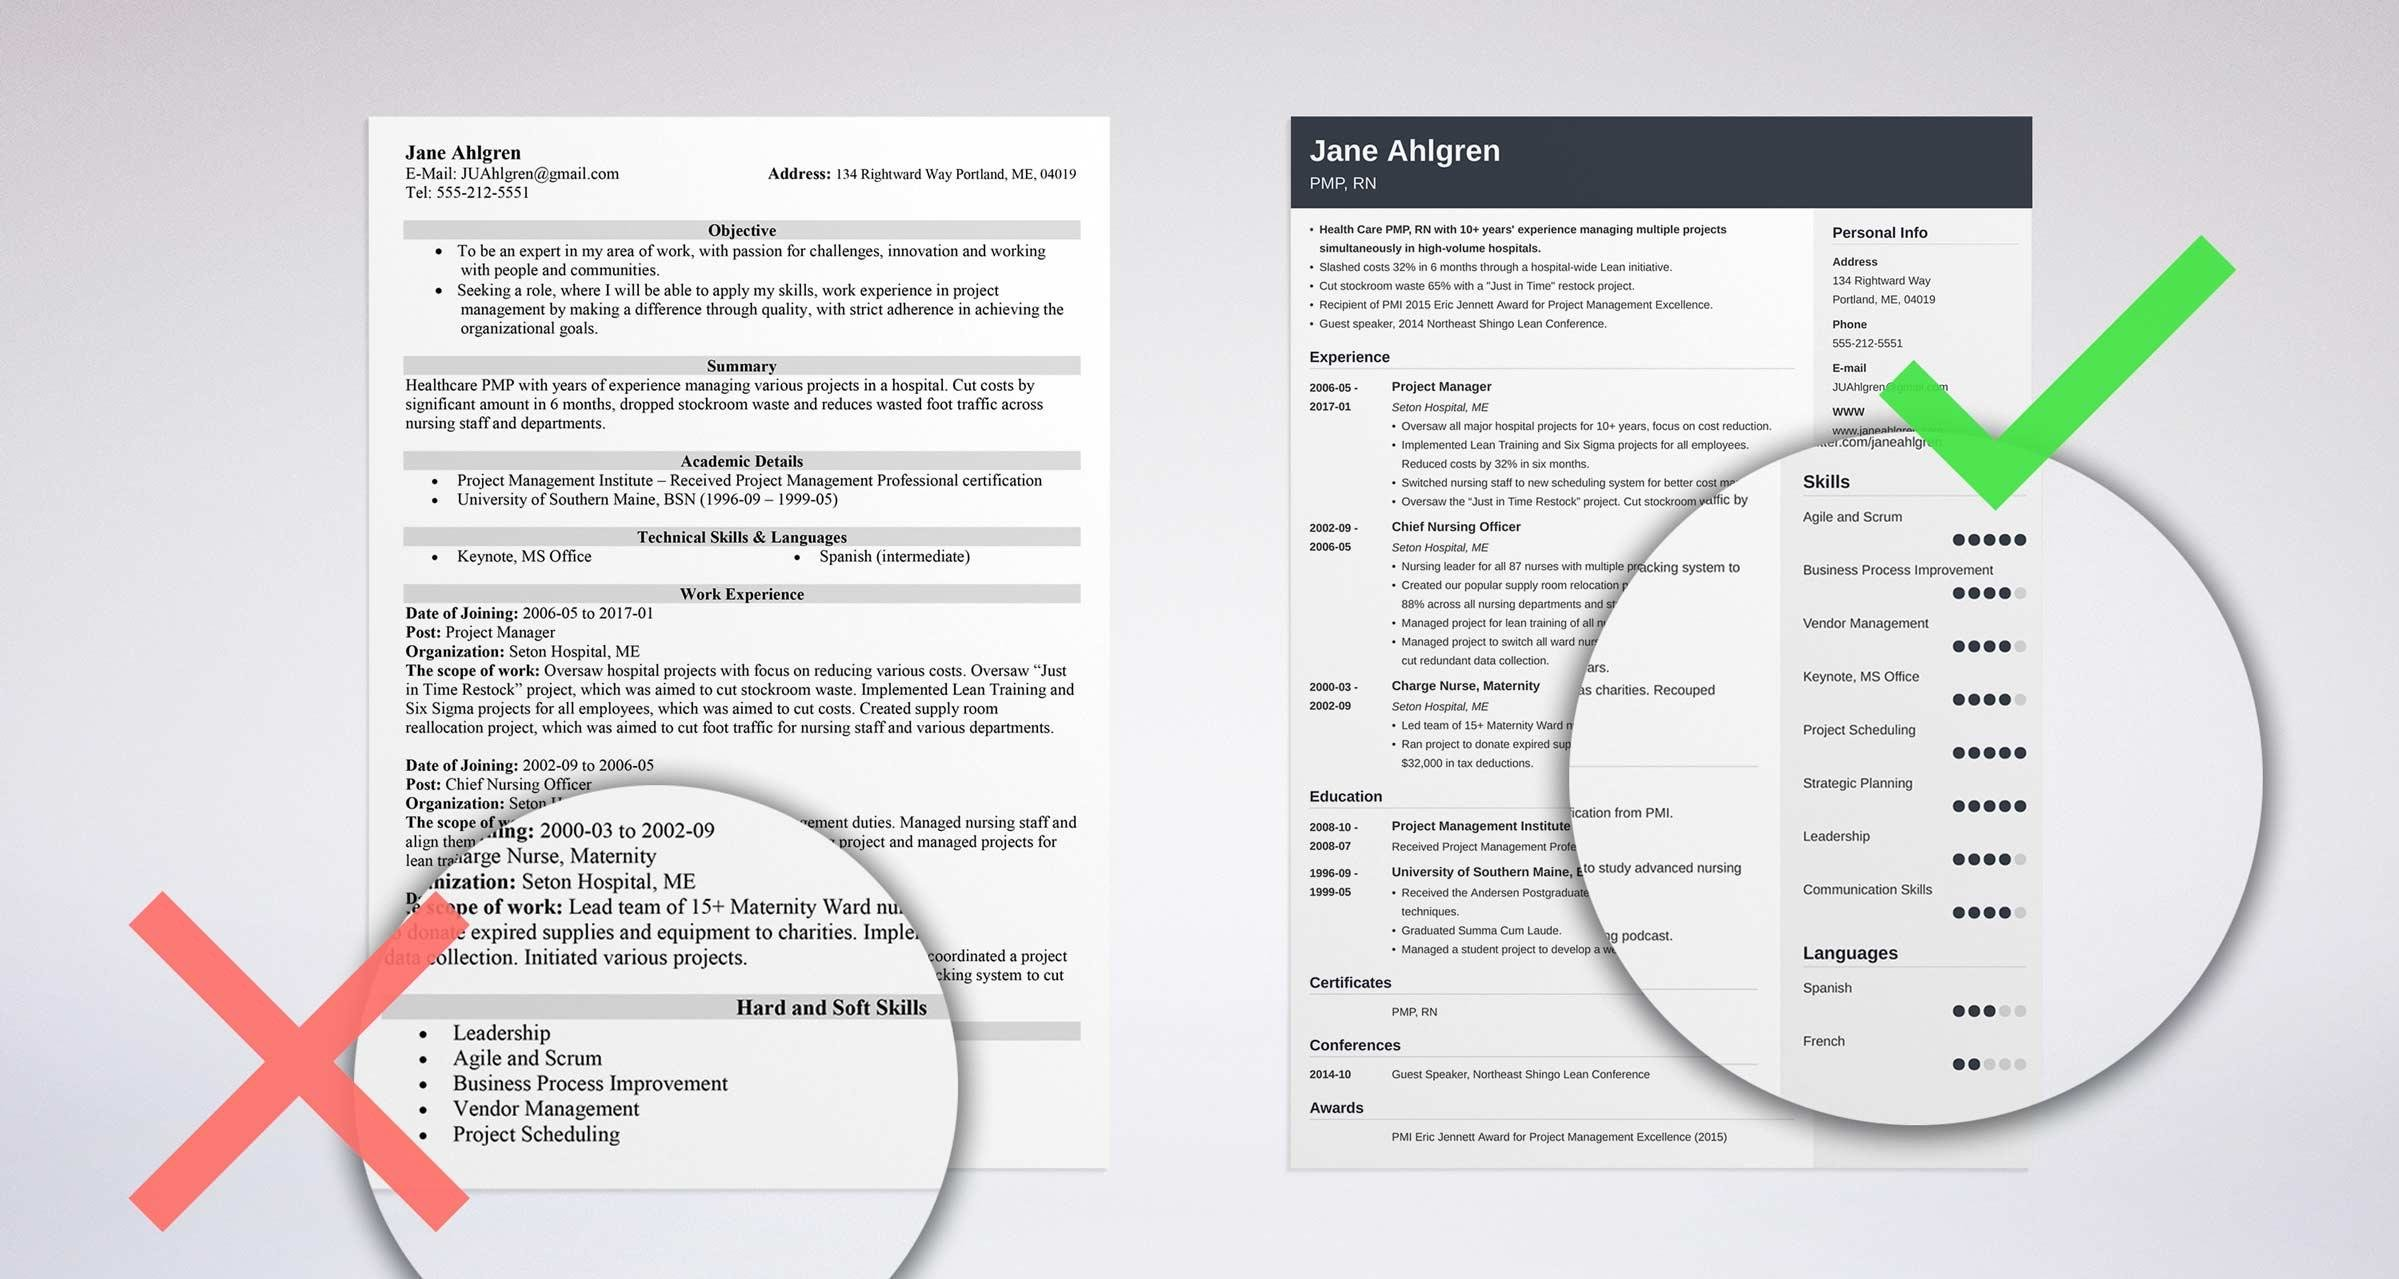 skills for resume best of examples all jobs professional capabilities on resume1 ccna Resume Professional Capabilities Resume